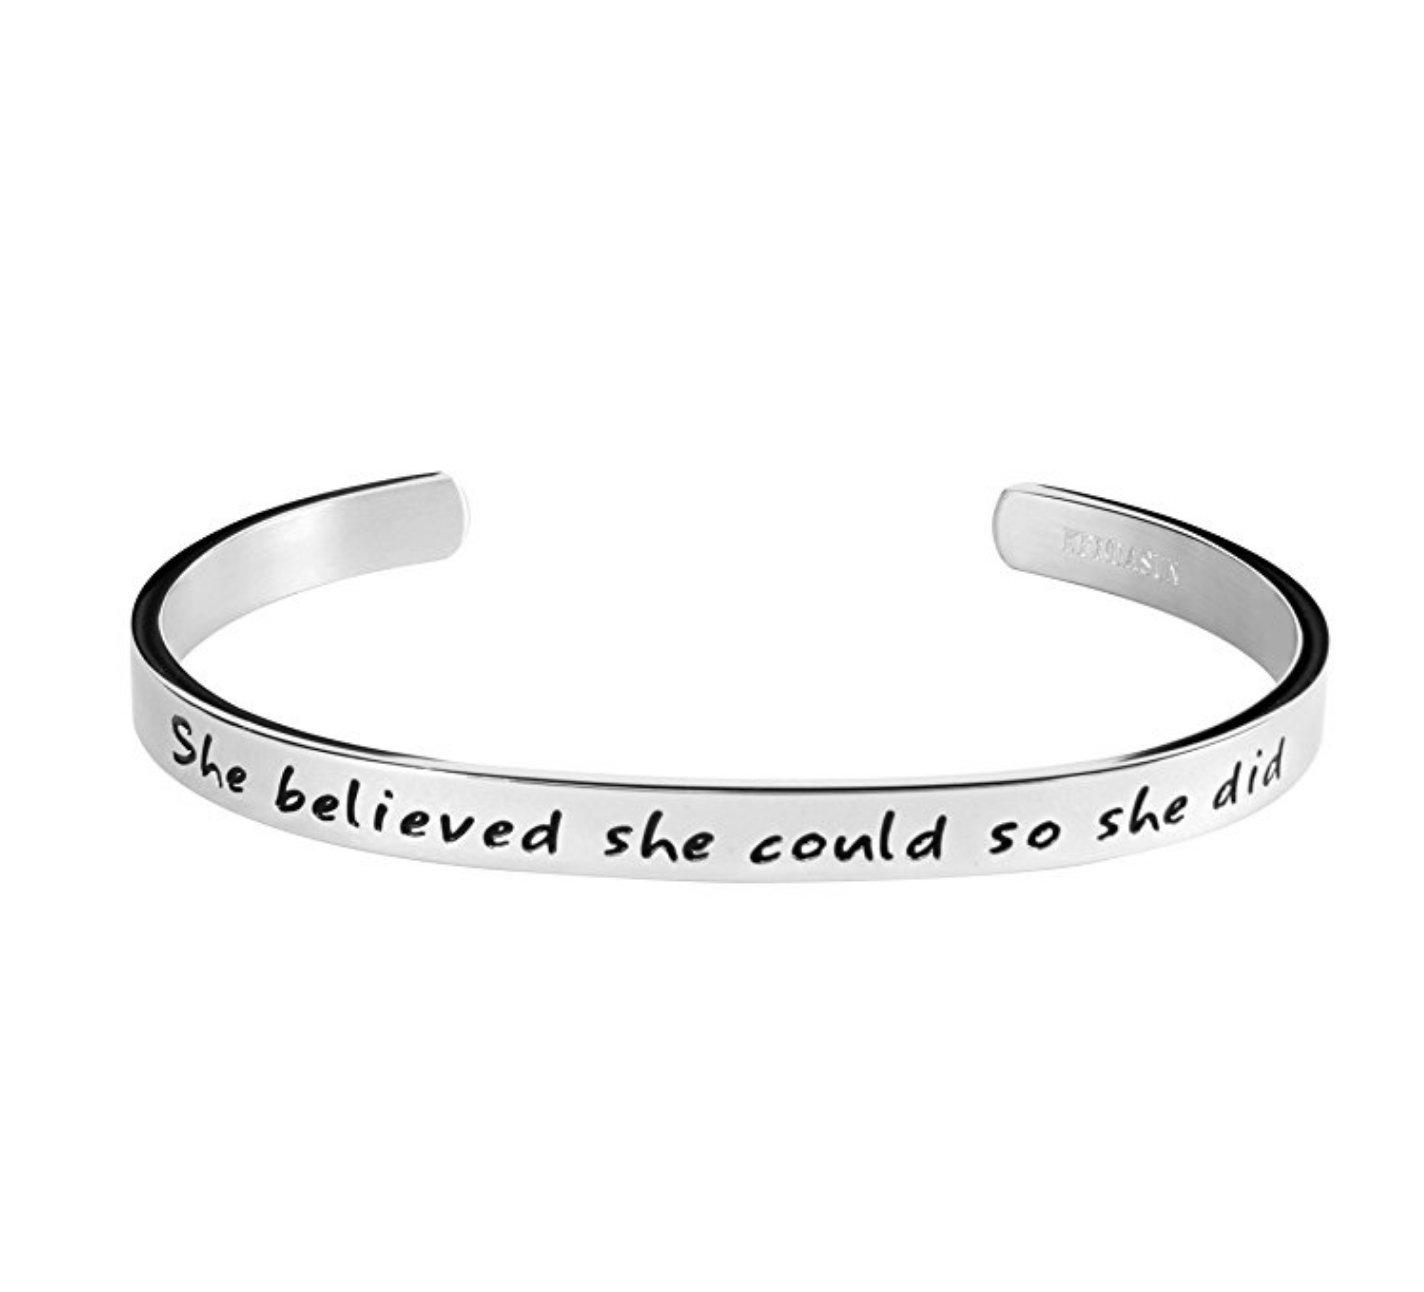 ''She believe she could so she did'' Inspirational Bracelet Cuff Bangle ( Silver tone standard size)